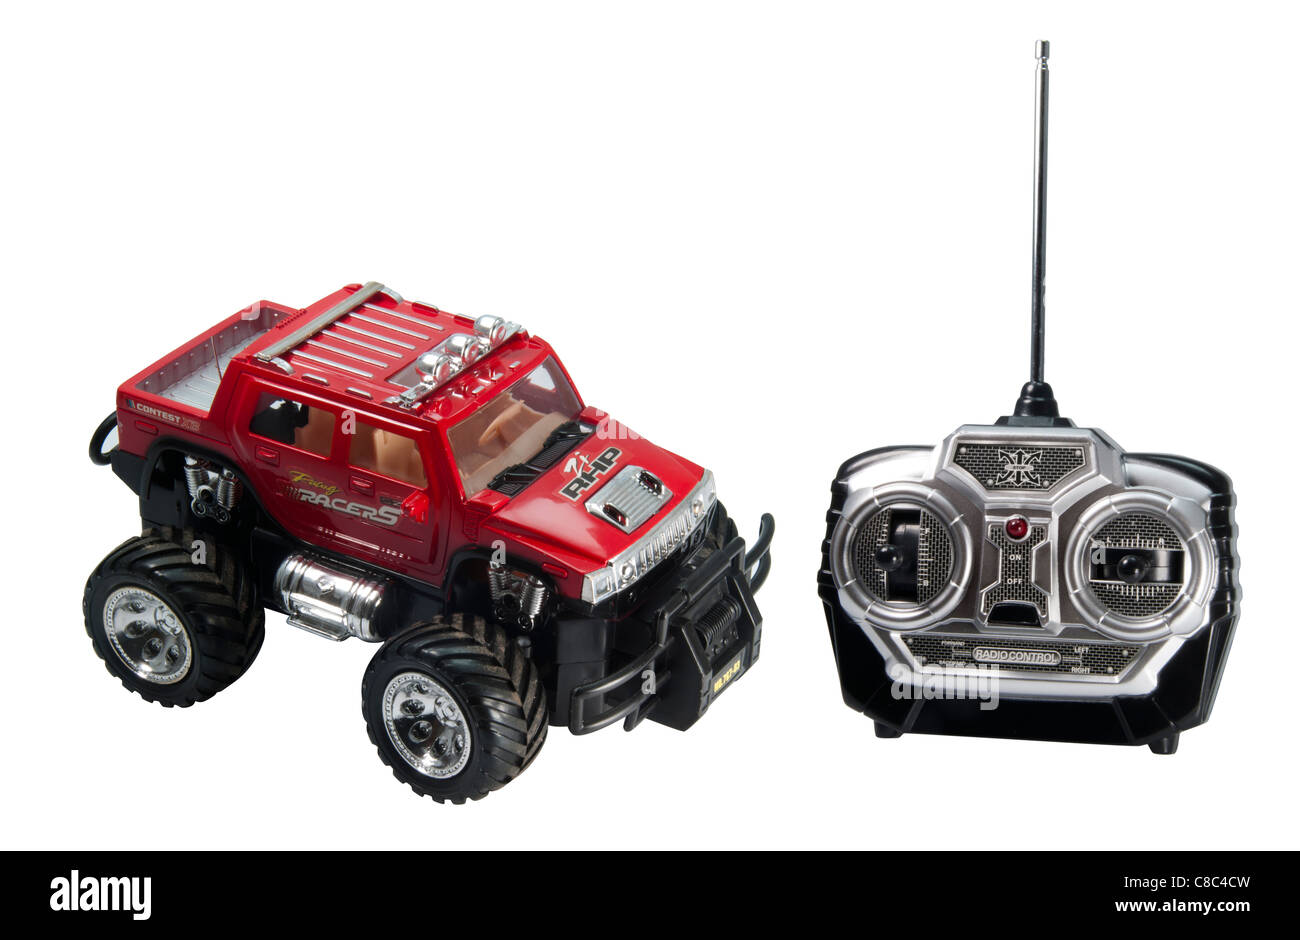 remote controlled truck toy car  - Hummer, on white background. - Stock Image